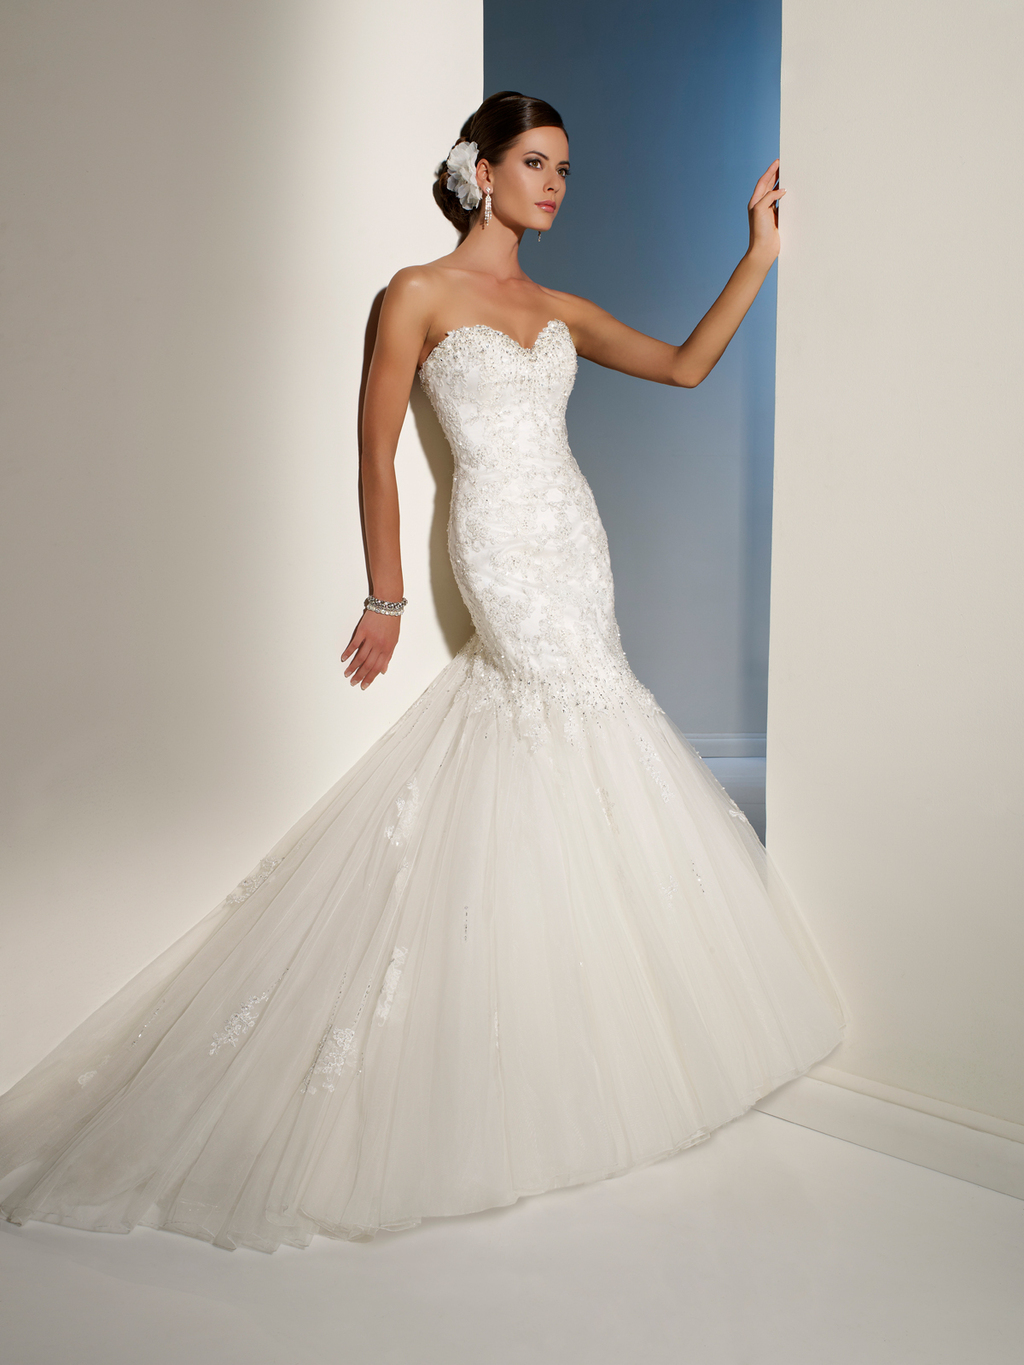 2012-wedding-dress-sophia-tolli-for-mon-cheri-bridal-gowns-y11215.full